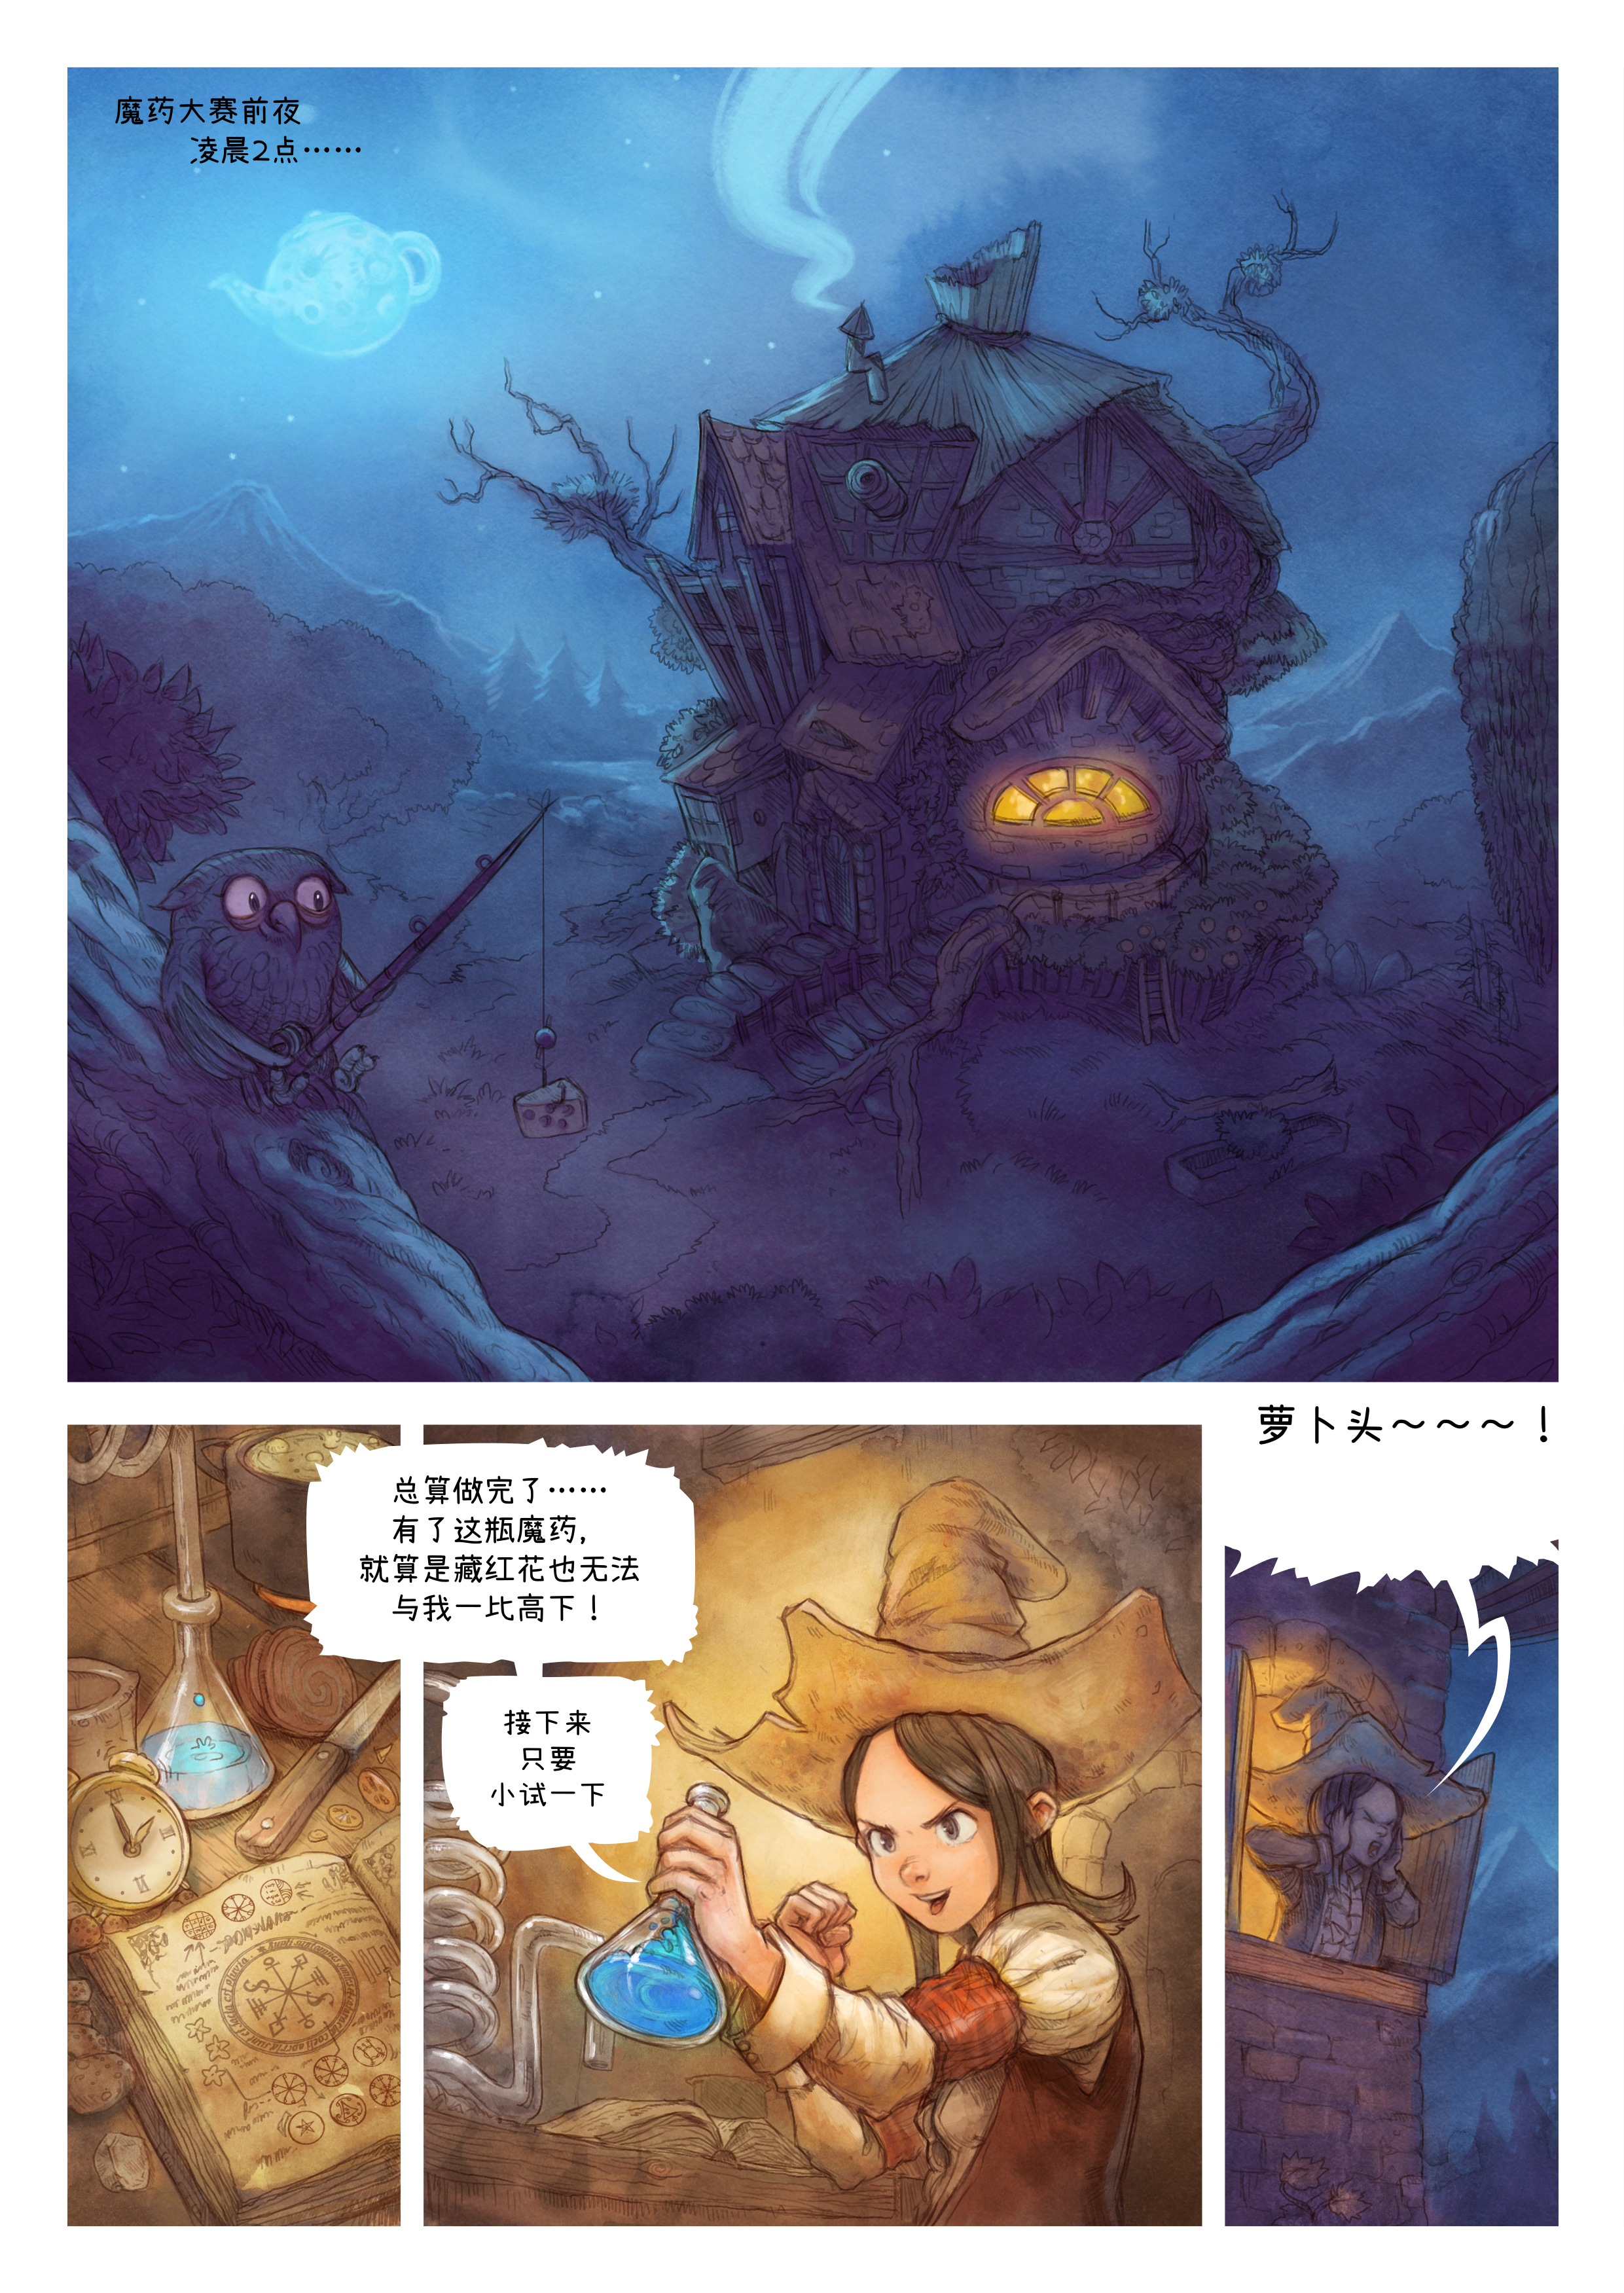 A webcomic page of Pepper&Carrot, 漫画全集 4 [cn], 页面 1